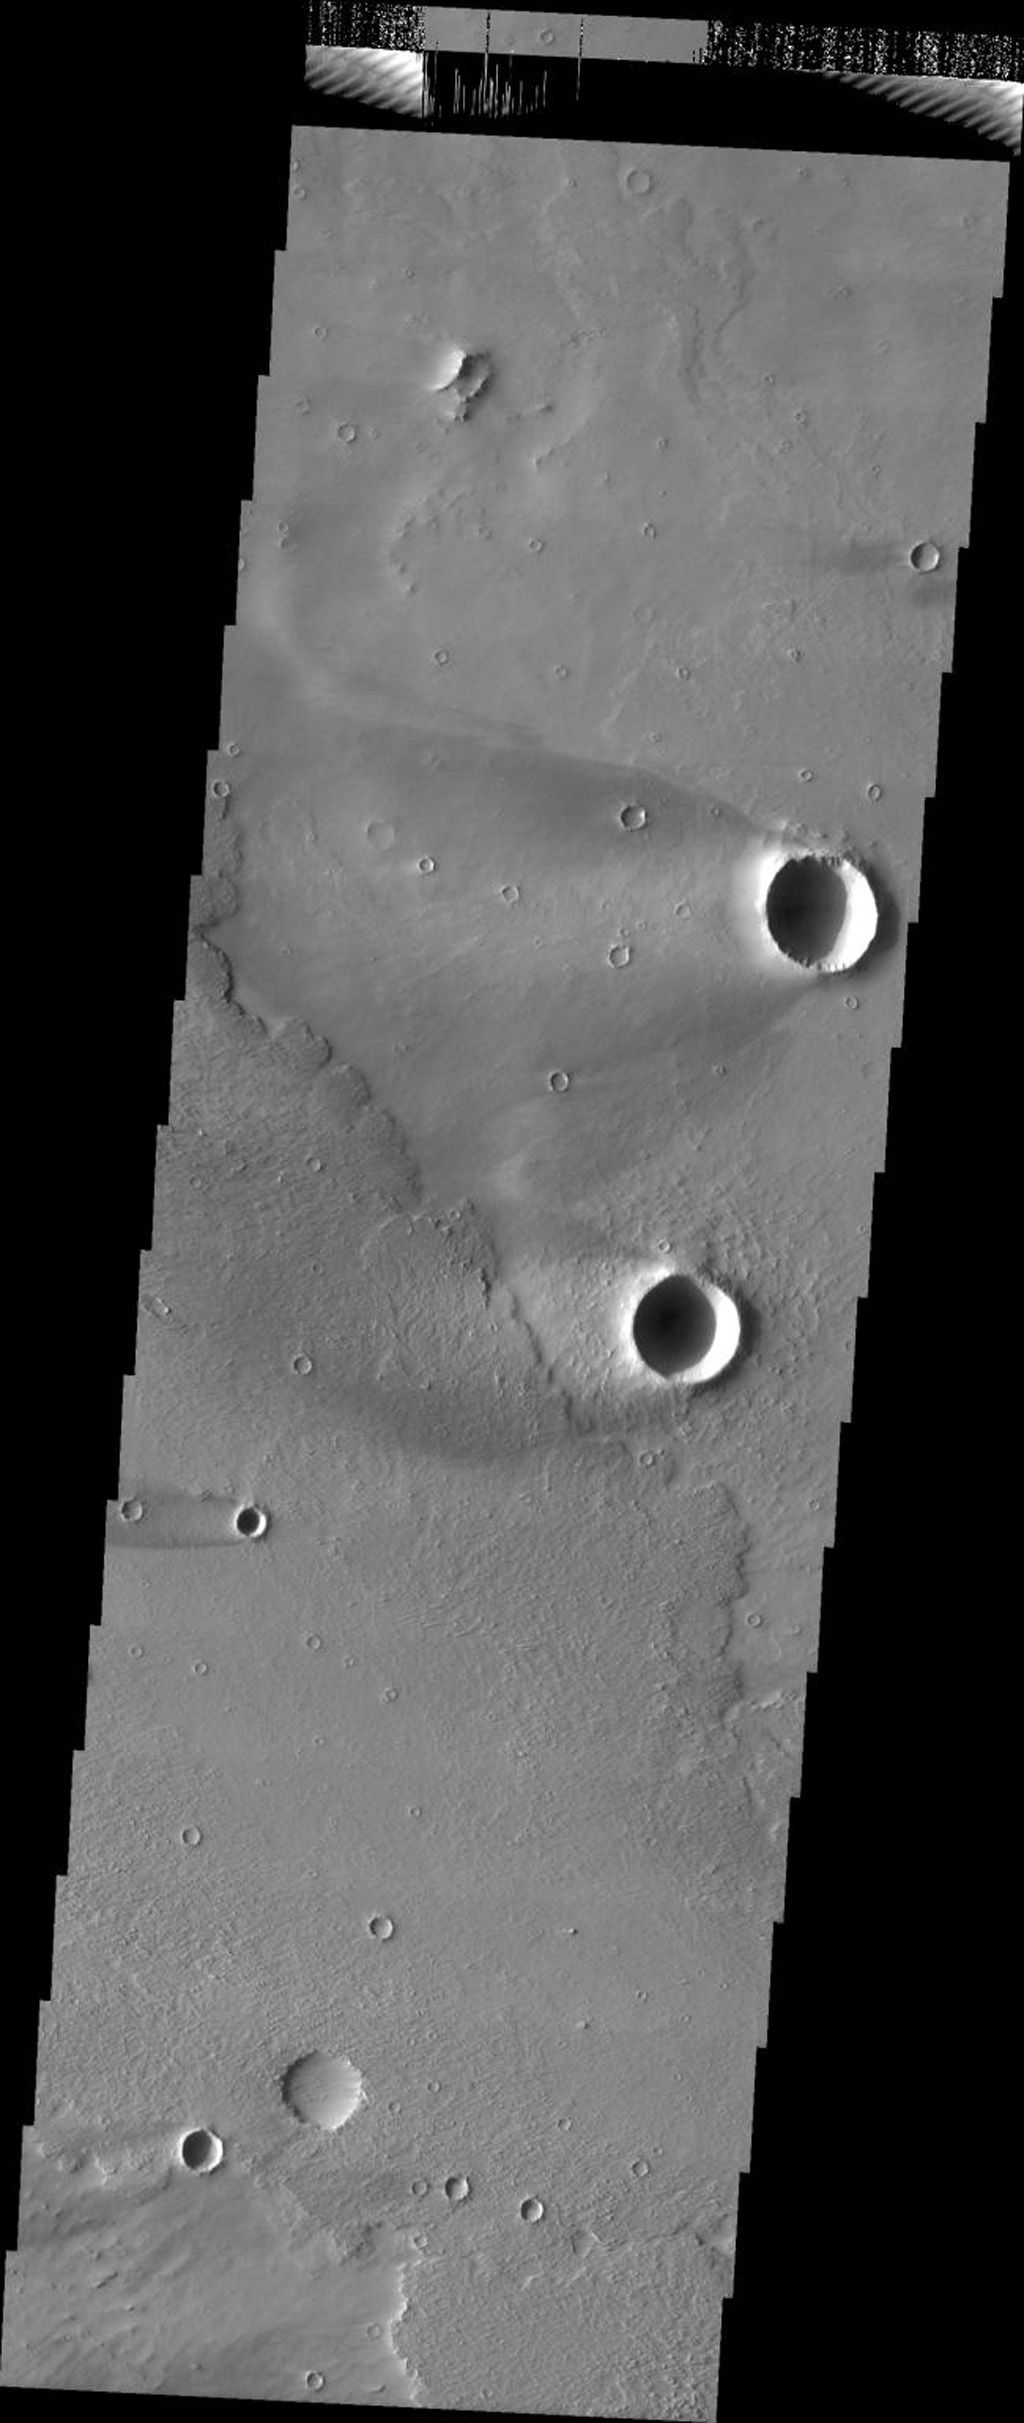 This image released on July 13, 2004 from NASA's 2001 Mars Odyssey shows windstreaks are features caused by the interaction of wind and topographic landforms on Mars such as two large windstreaks of the scour-and-deposit type.